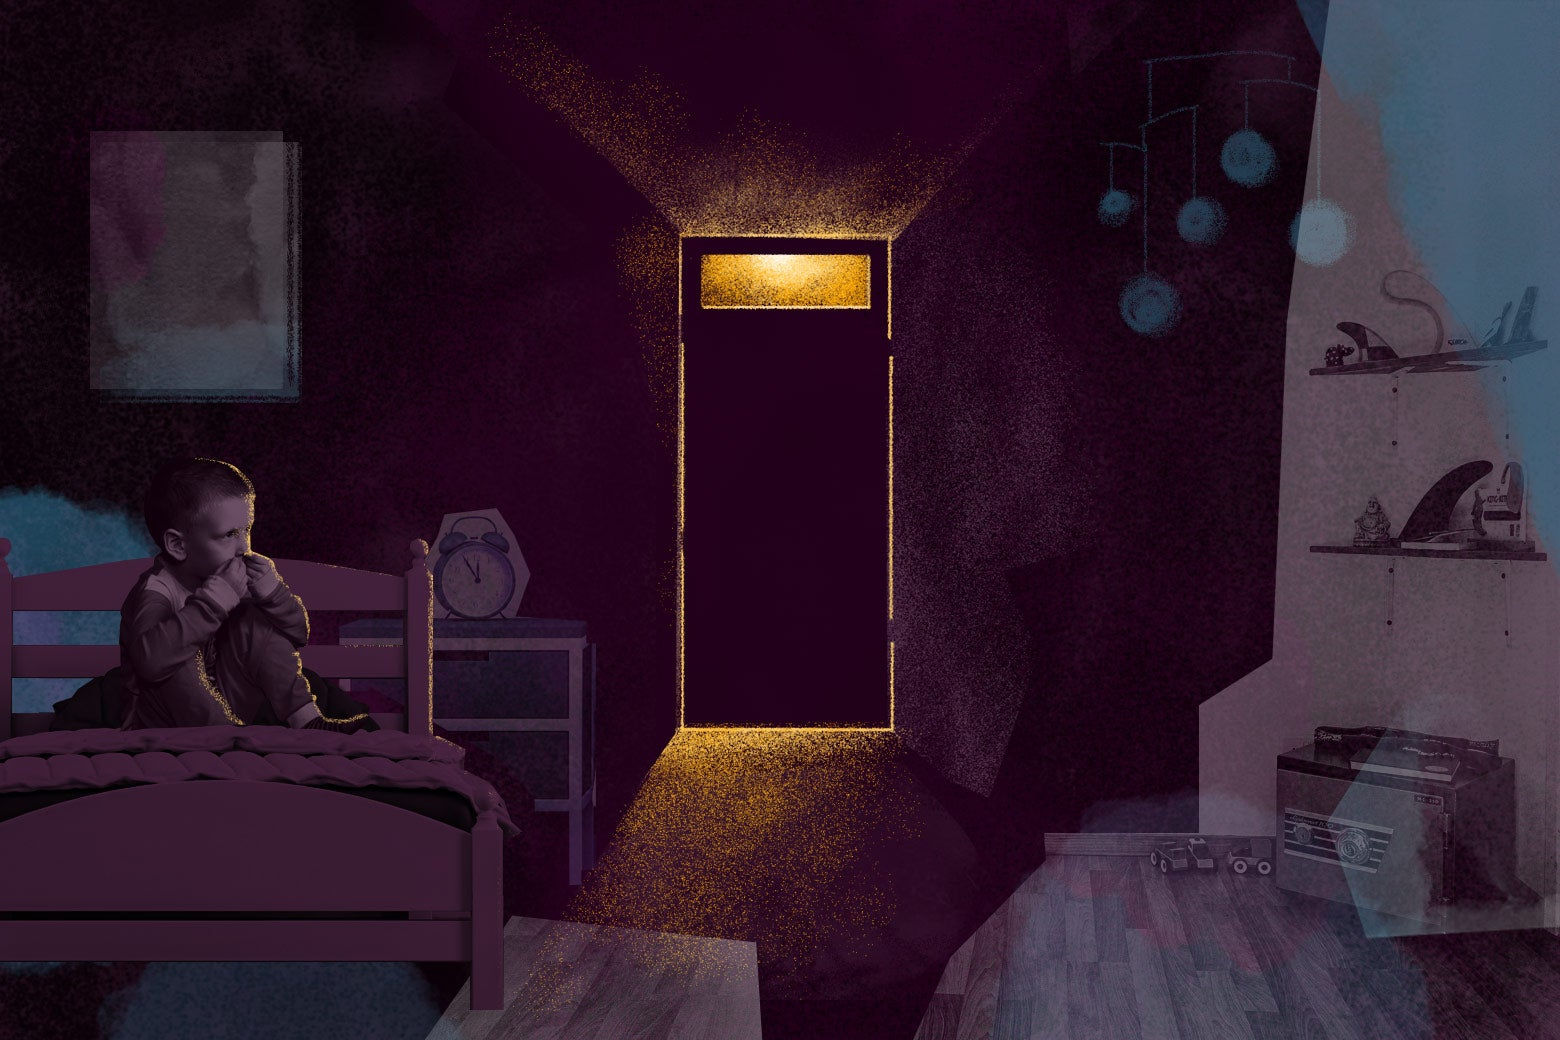 Illustration of a boy in a dark room lit only by the light coming in a transom above the door.